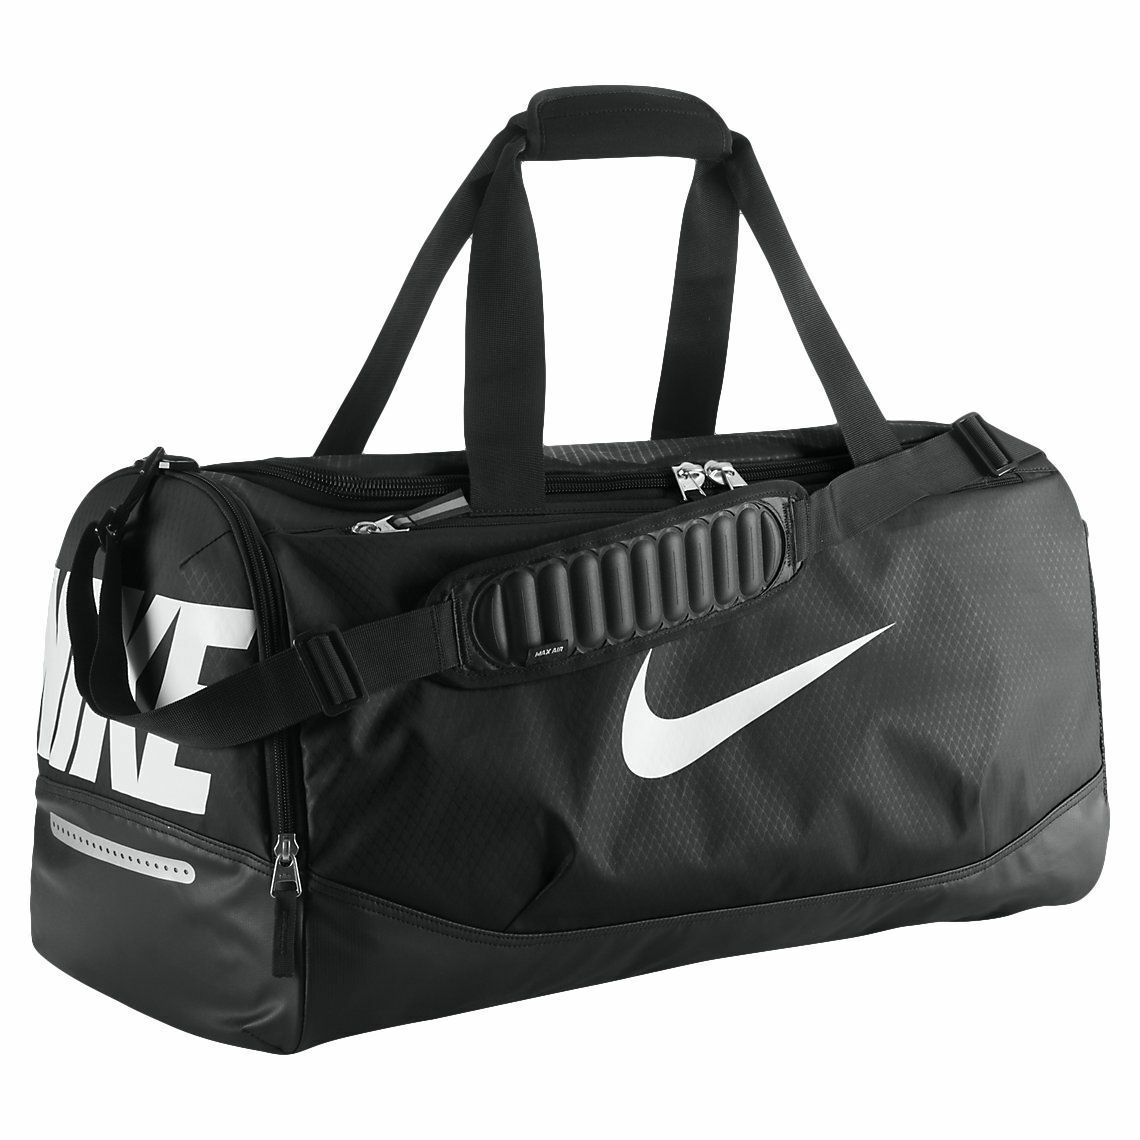 d70522ba52b8 Nike Men s Duffle Gym Bags